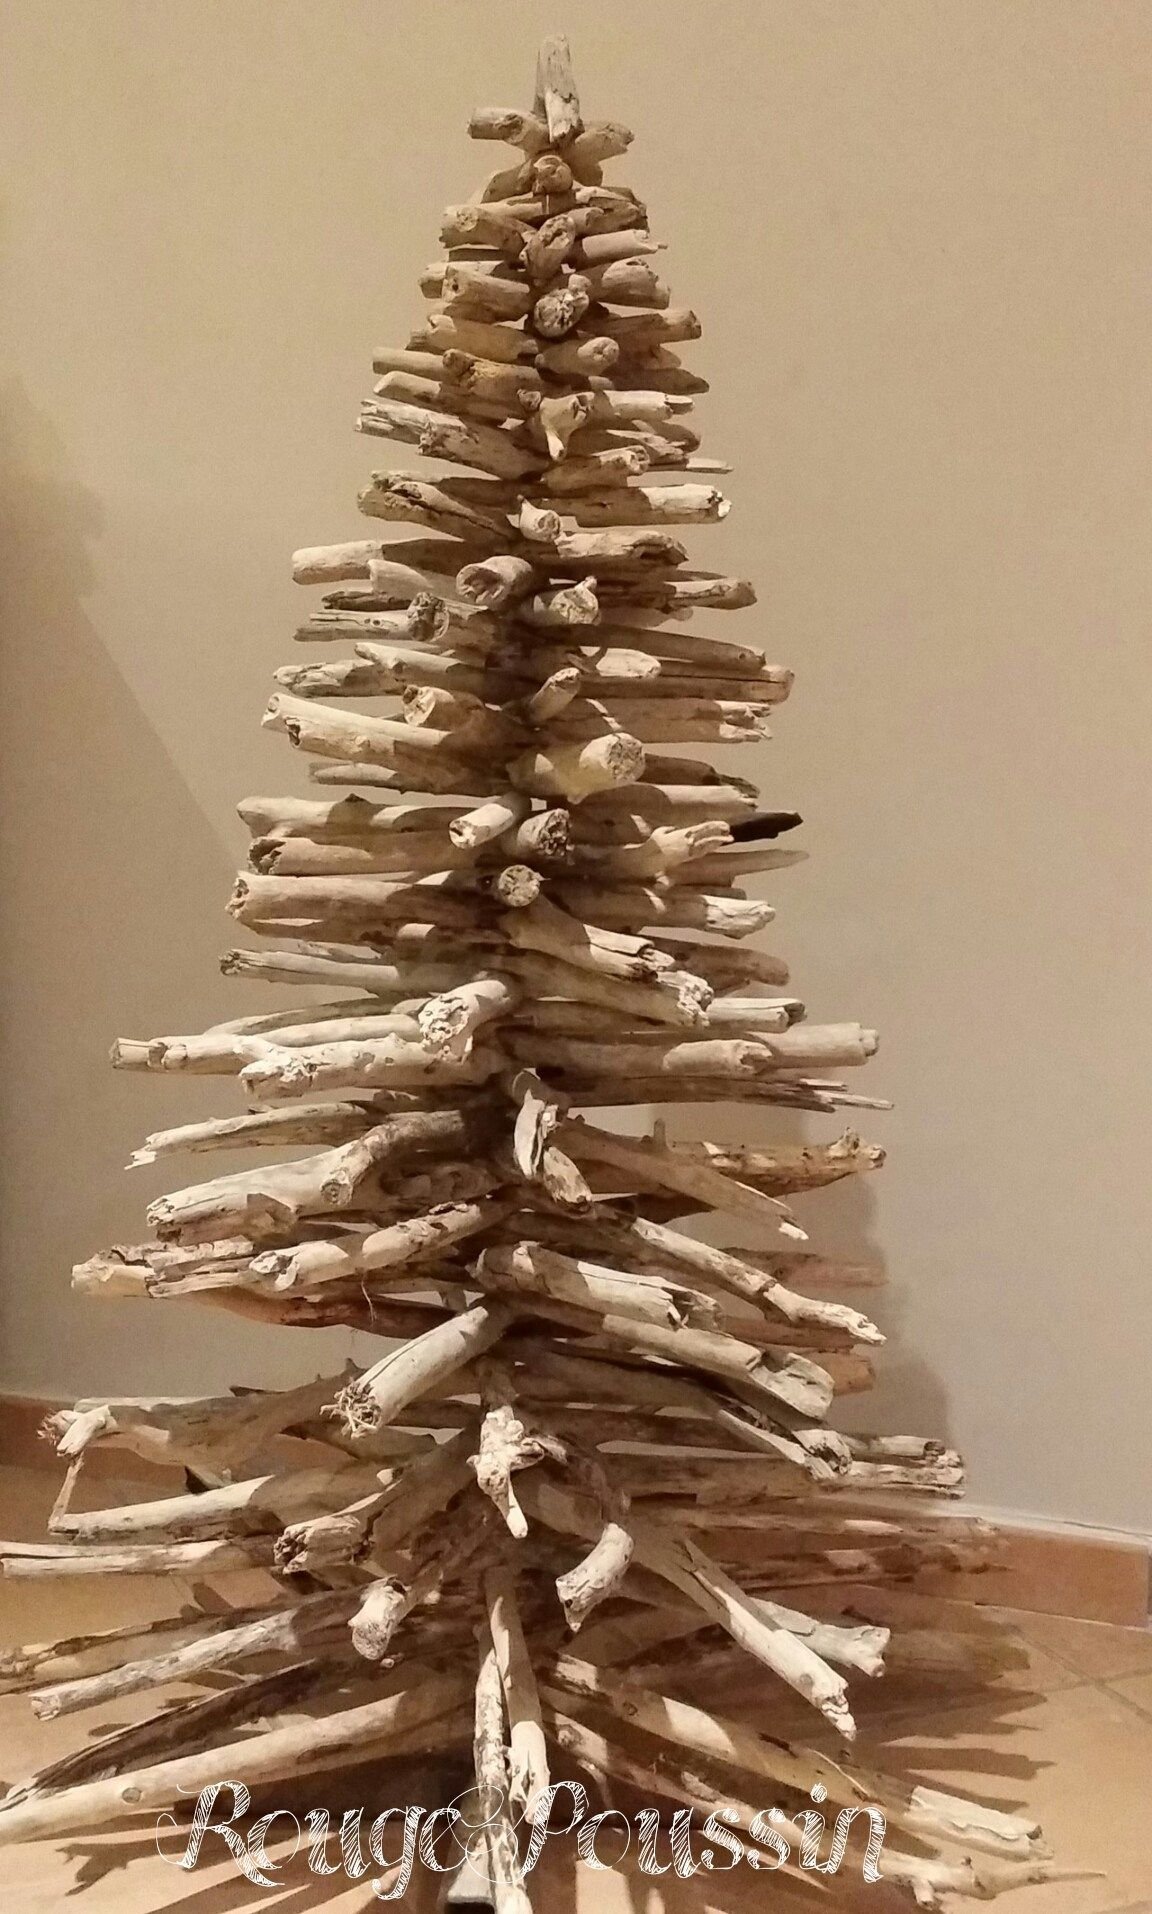 Photo Du Sapin De Noël En Bois Flotté Sans Décoration